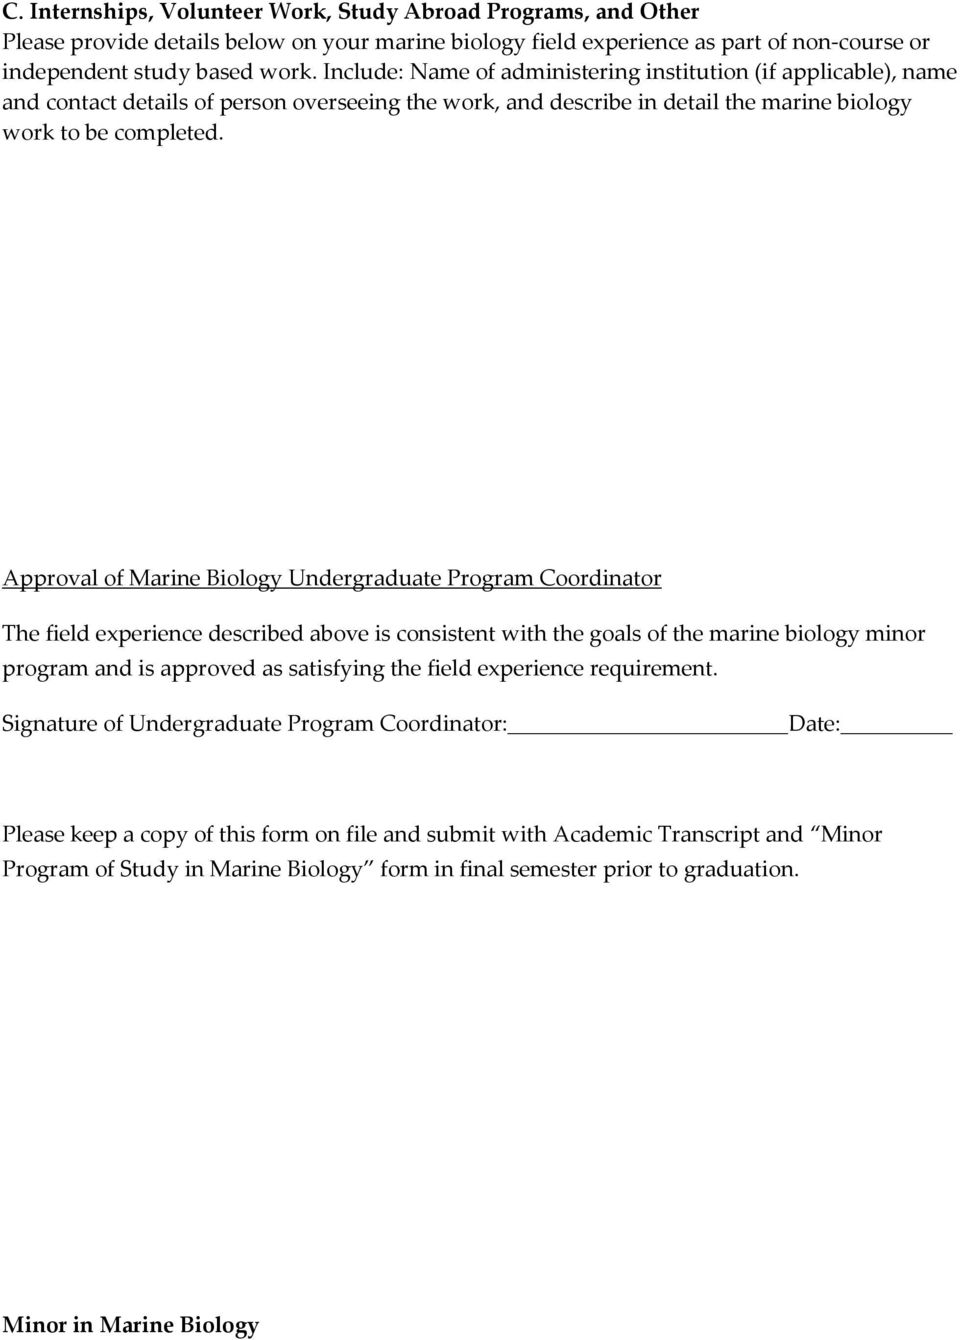 Approval of Marine Biology Undergraduate Program Coordinator The field experience described above is consistent with the goals of the marine biology minor program and is approved as satisfying the